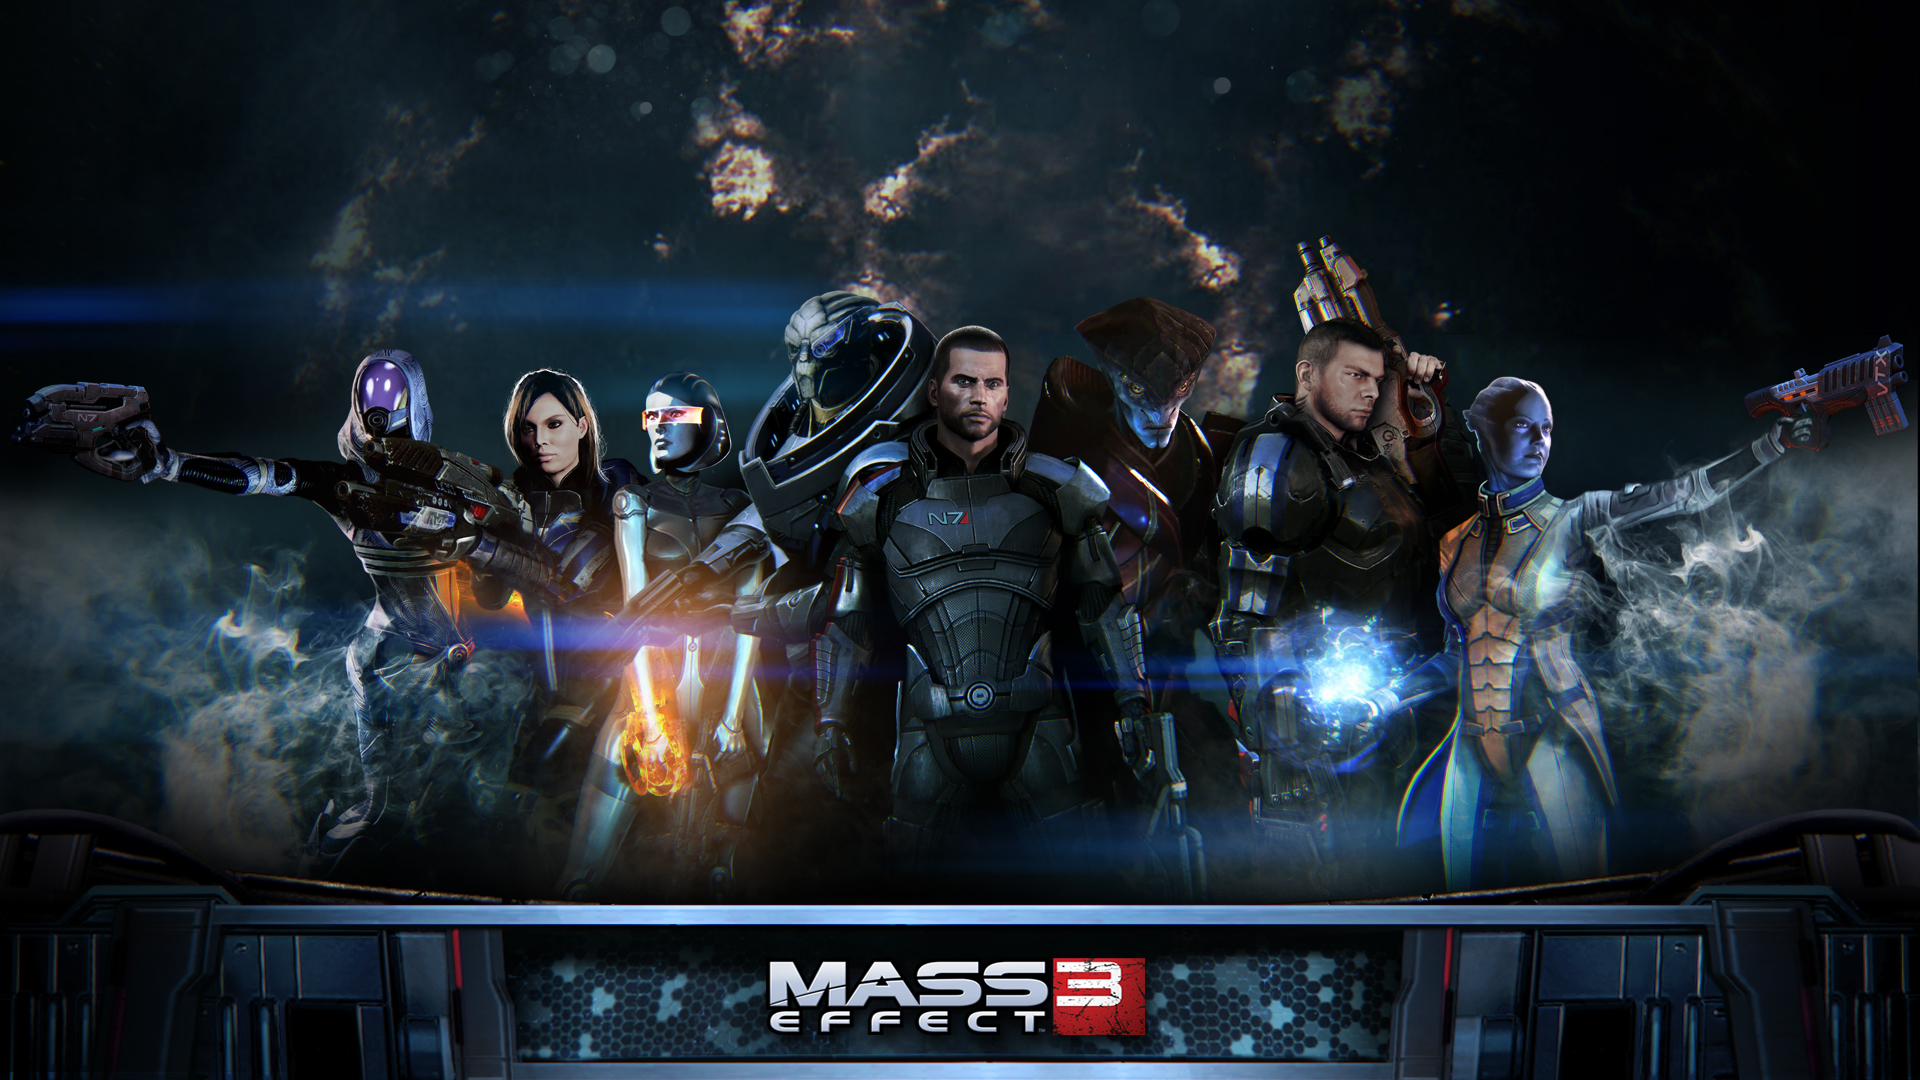 Mass Effect 4 News Update: Mass Effect 3 Writer Returns To BioWare's Sci-Fi Epic